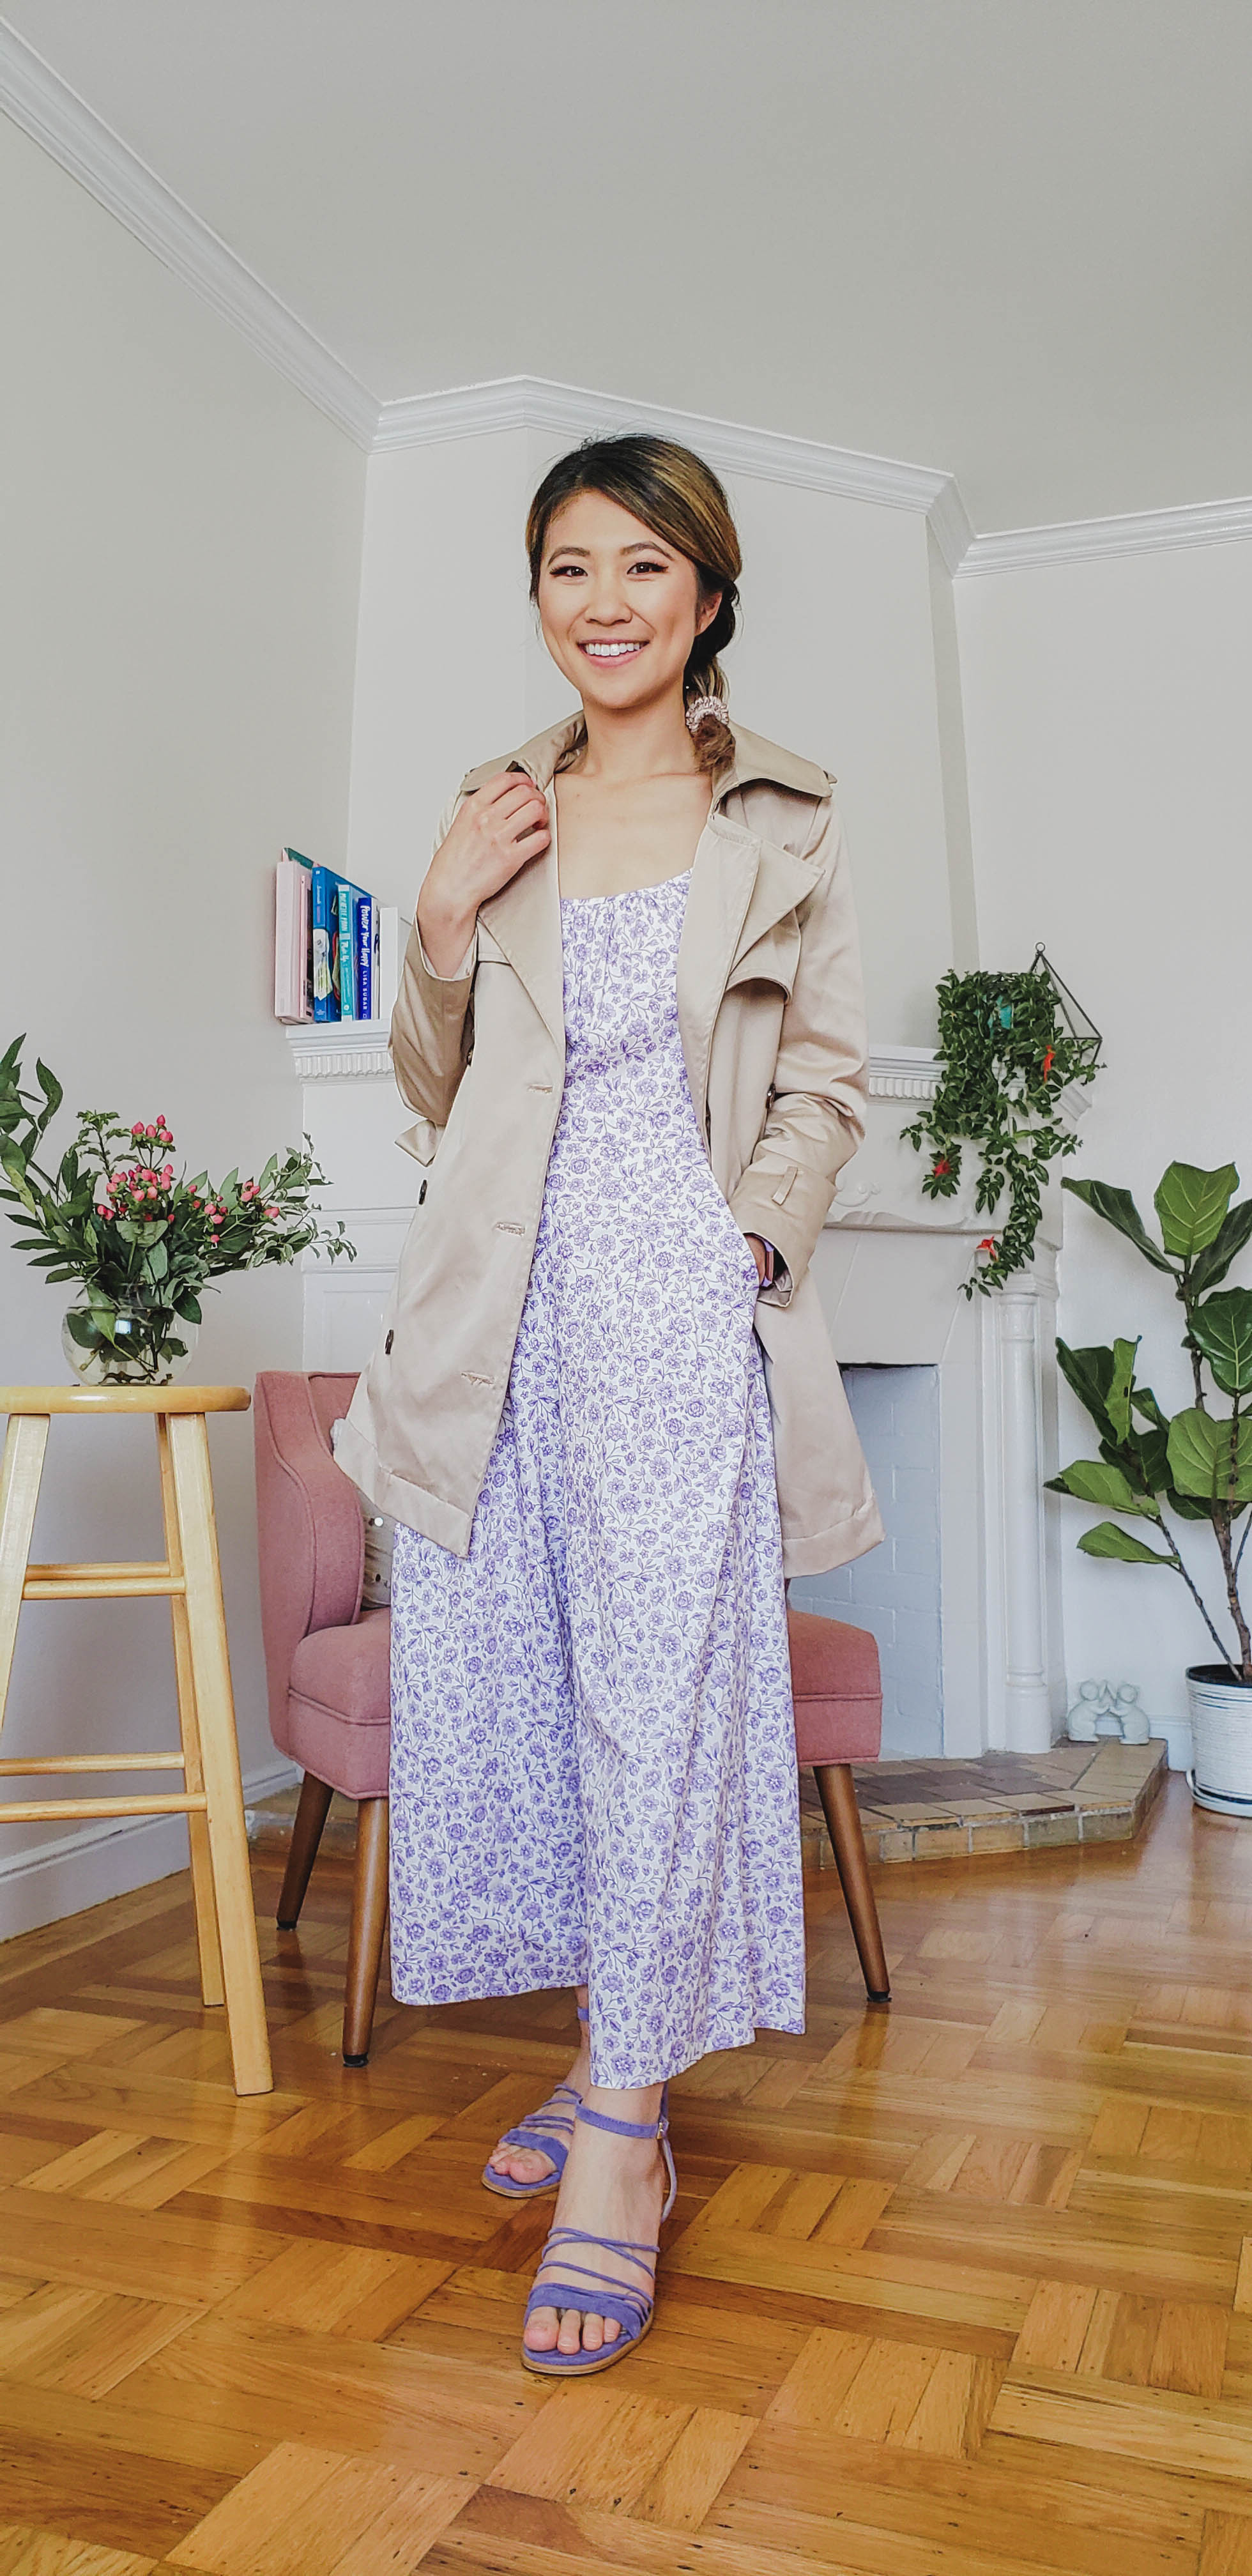 FashionbyAlly-How-to-style-a-jumpsuit2.jpg